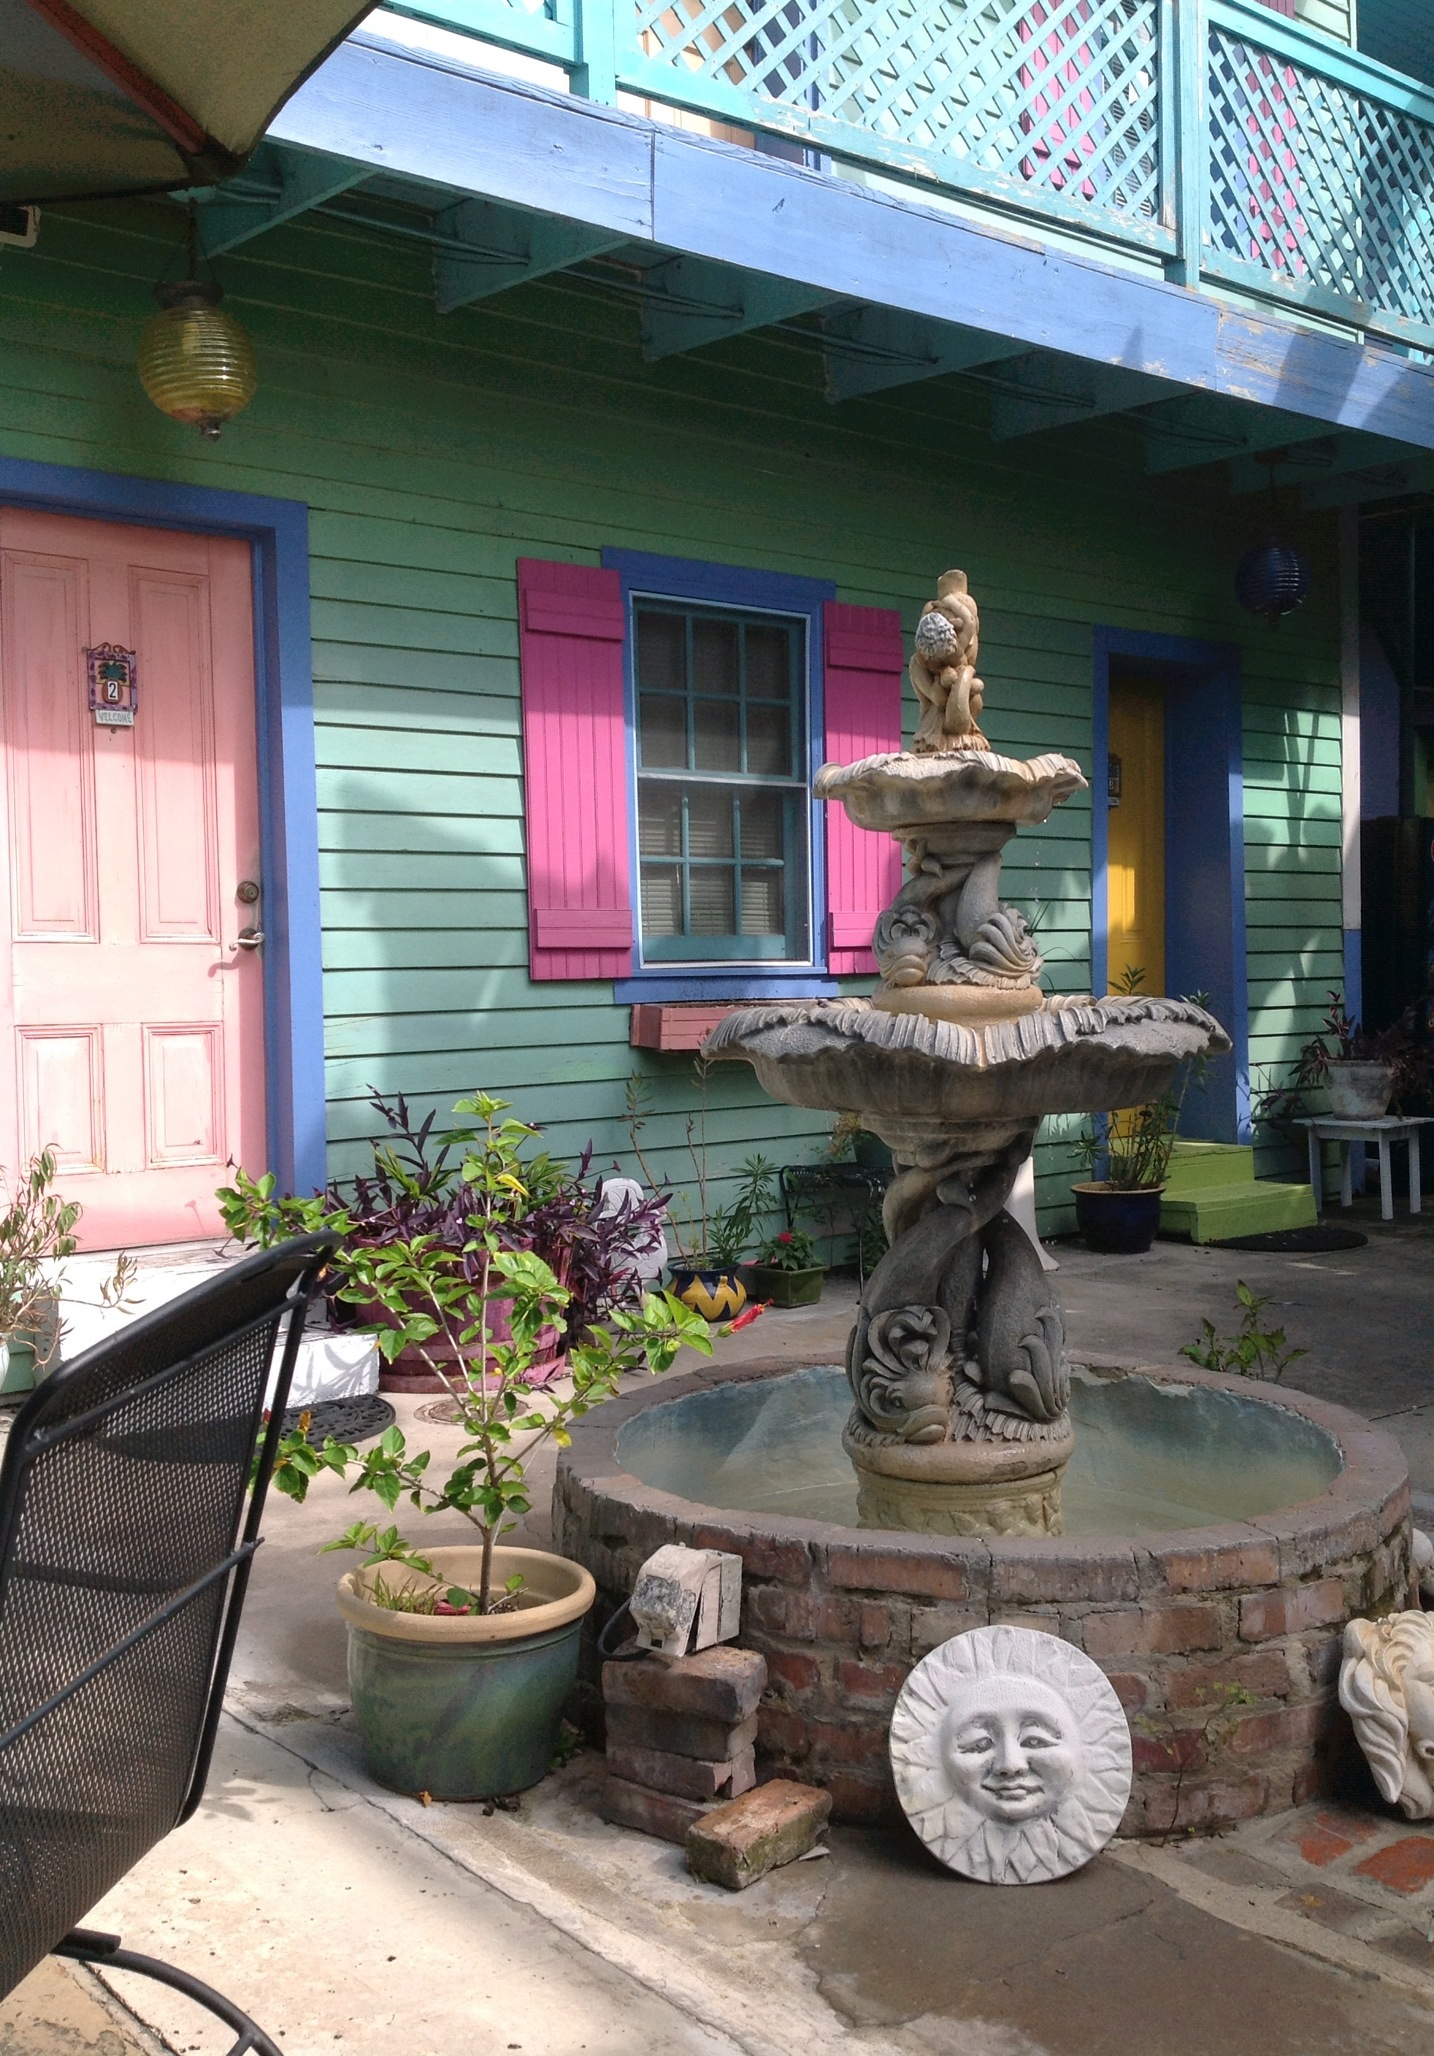 Looking for Walker Percy: The courtyard of Creole Gardens, a bed and breakfast in New Orleans.